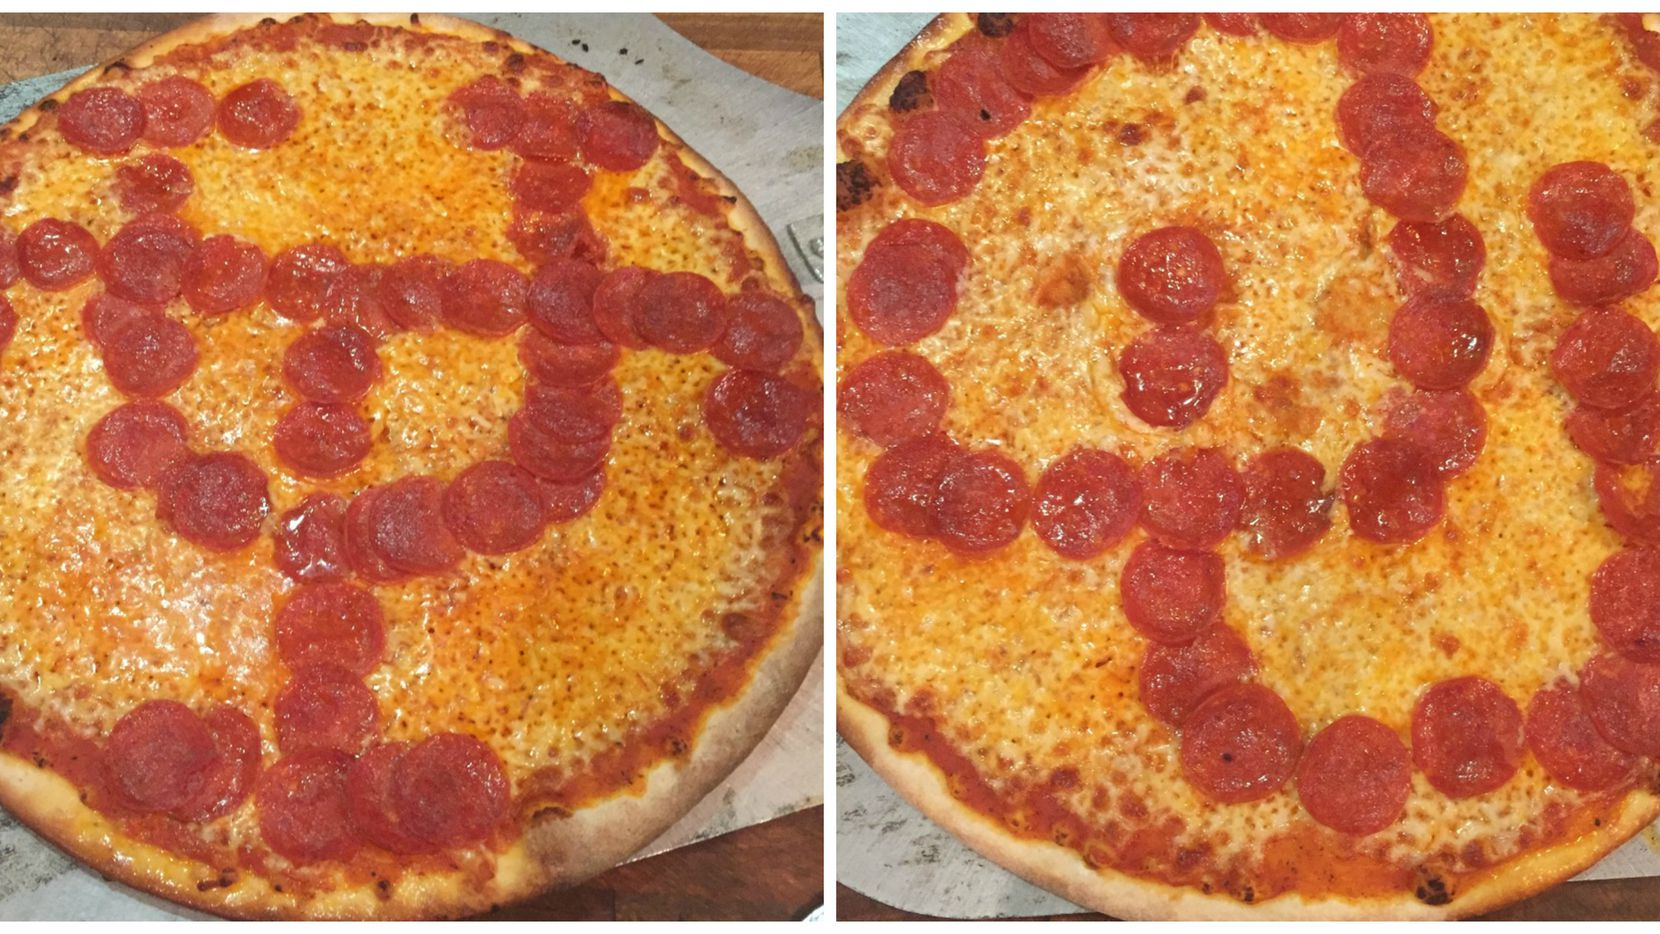 Greenville Avenue Pizza Company is onto something with the pepperoni pizzas spelling team logos. What else can we spell with pepperonis?